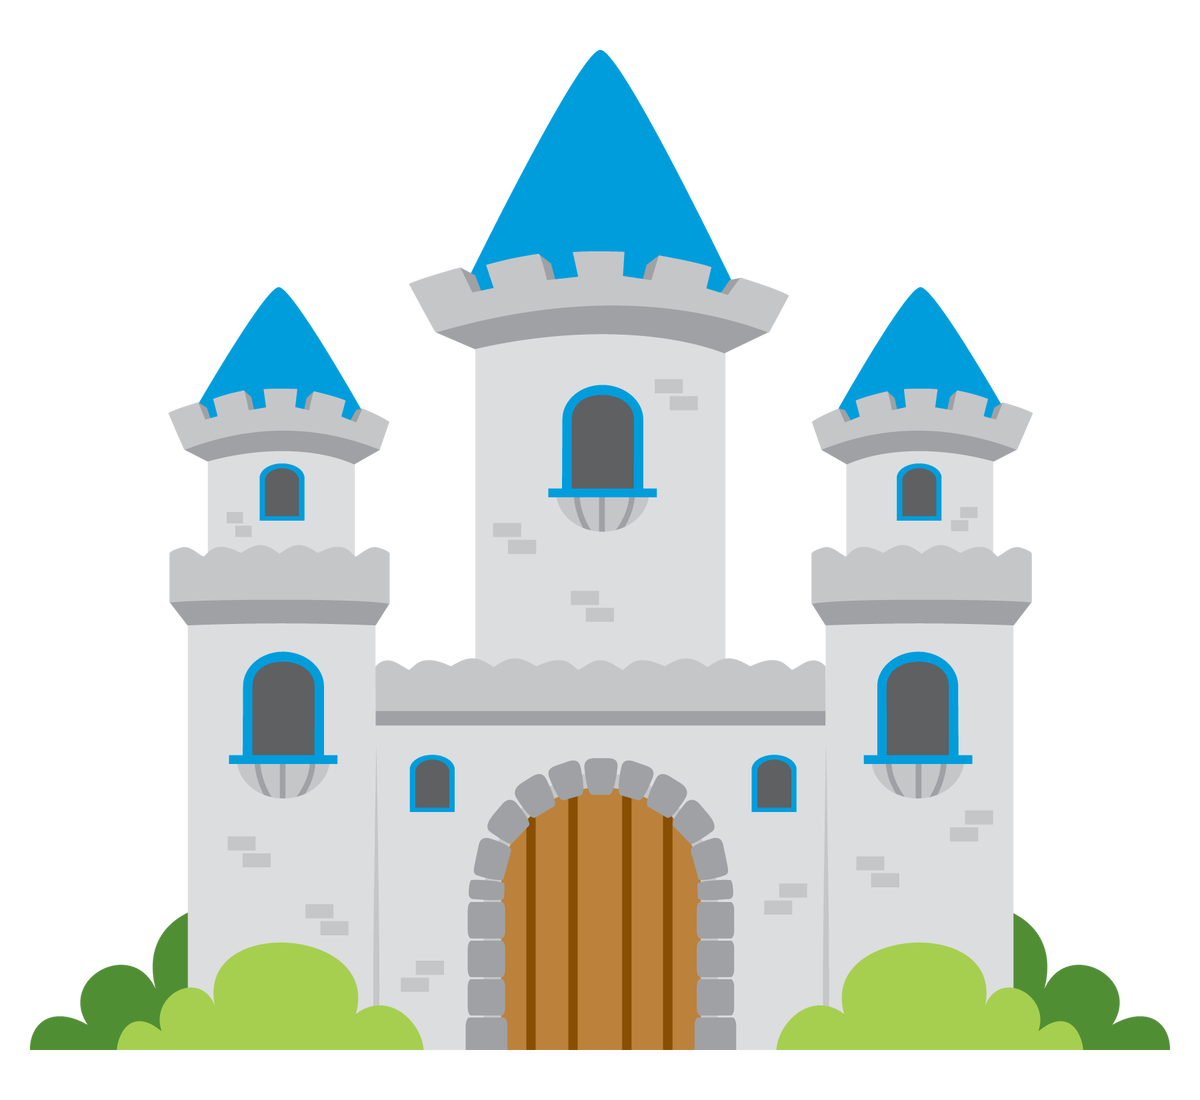 Fish tank castle clipart clipart royalty free library 28+ Collection of Castle Clipart Transparent | High quality, free ... clipart royalty free library